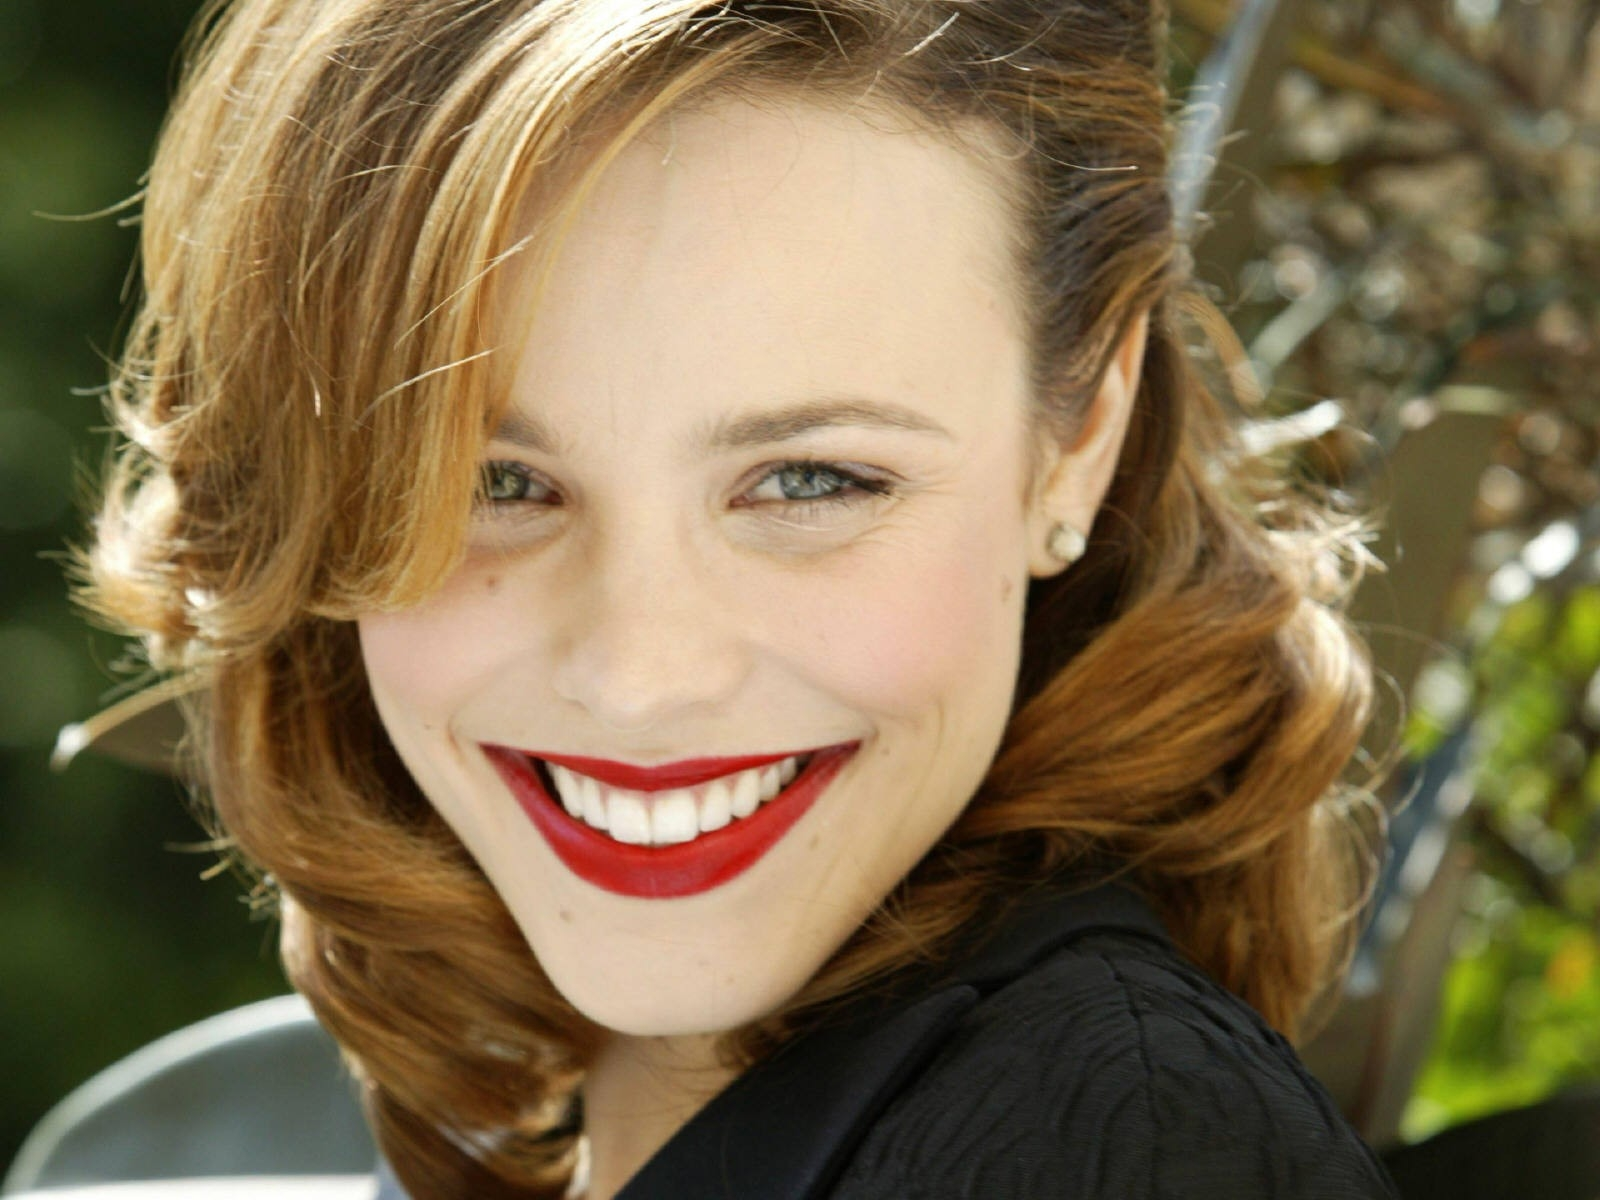 Wallpaper - una luminosa e seducente Rachel McAdams